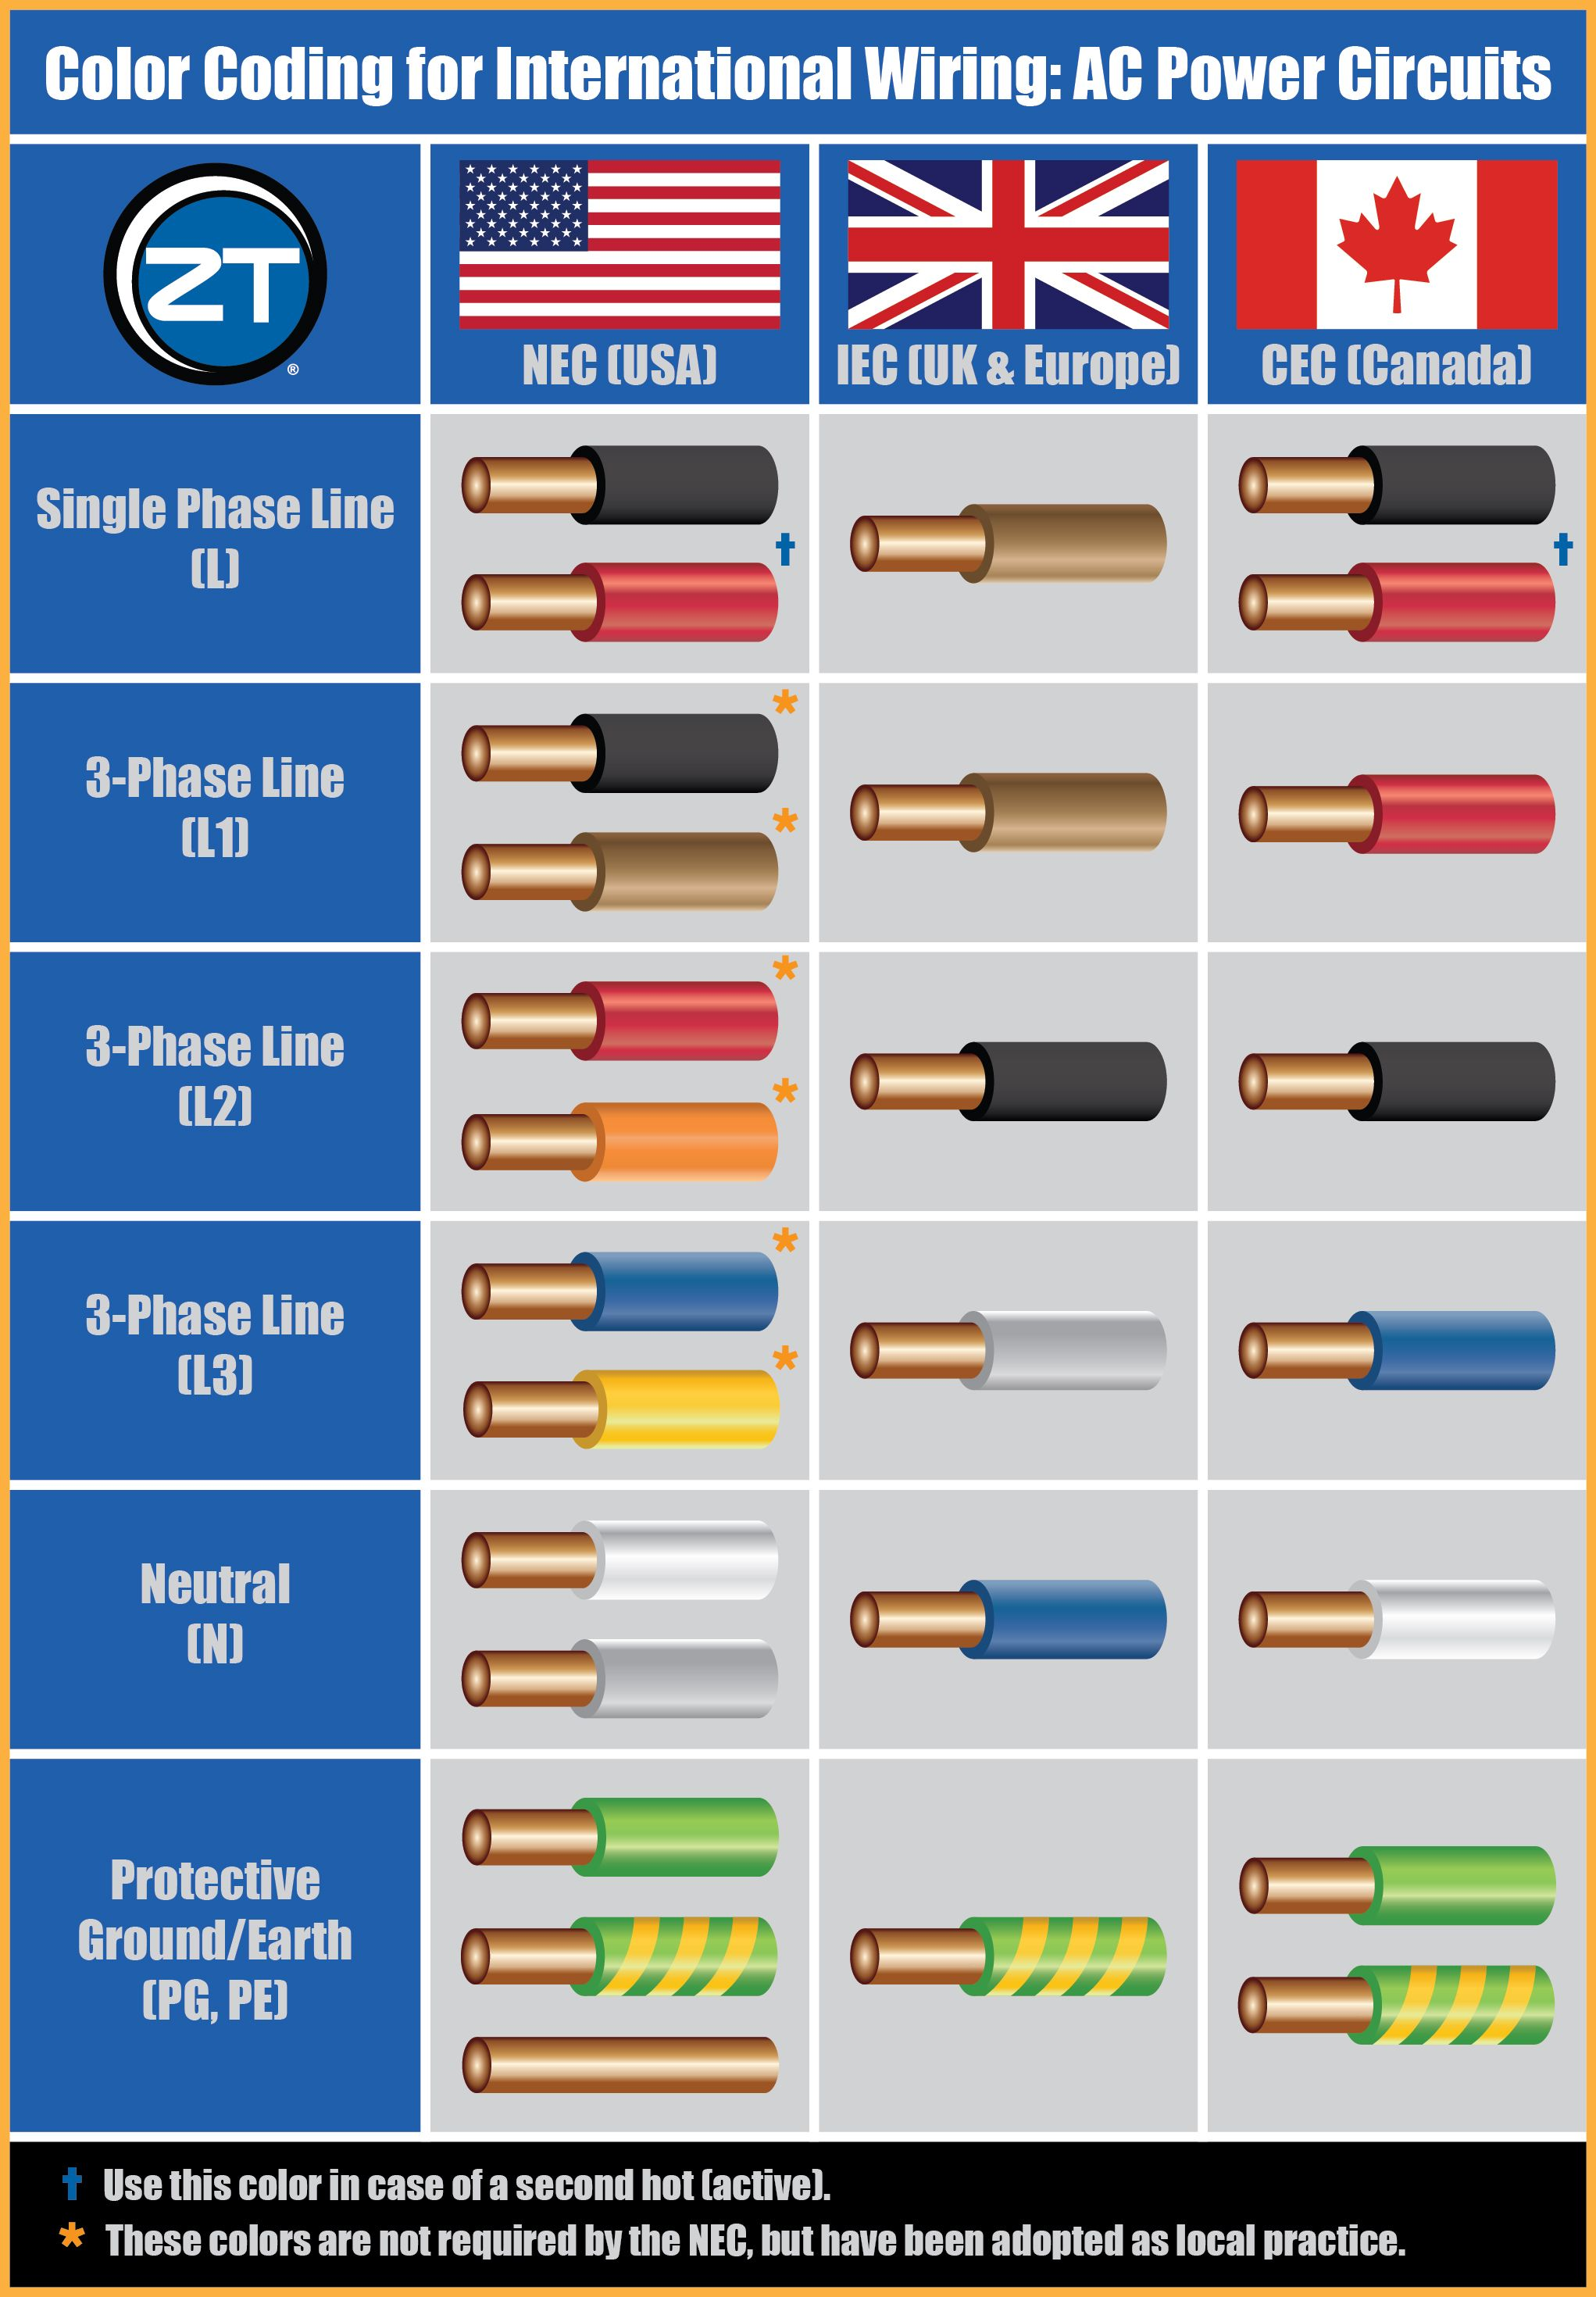 Guide To Color Coding For International Wiring International 110 Electric  Motor Wire Color 110 Ac Wire Color